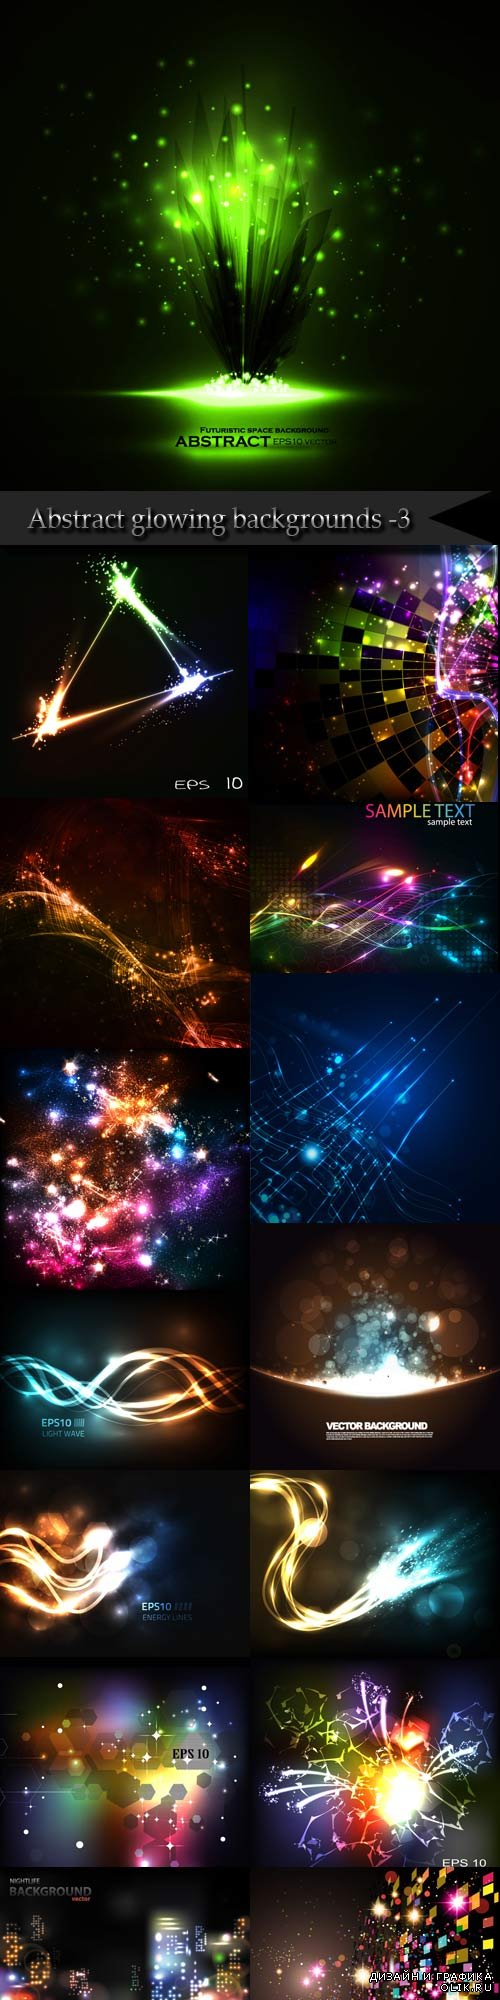 Abstract glowing backgrounds -3